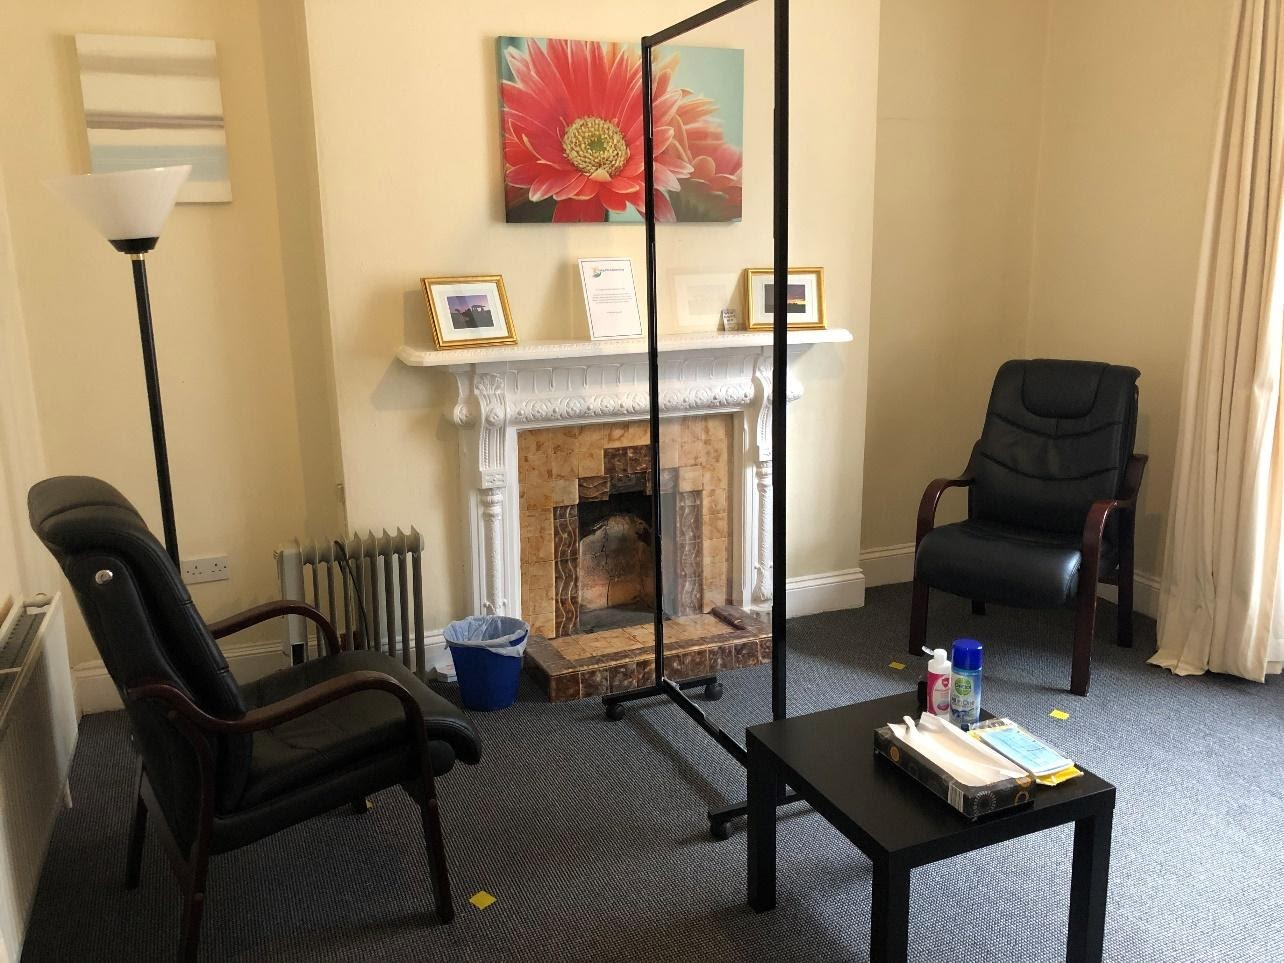 Counselling Room No 5